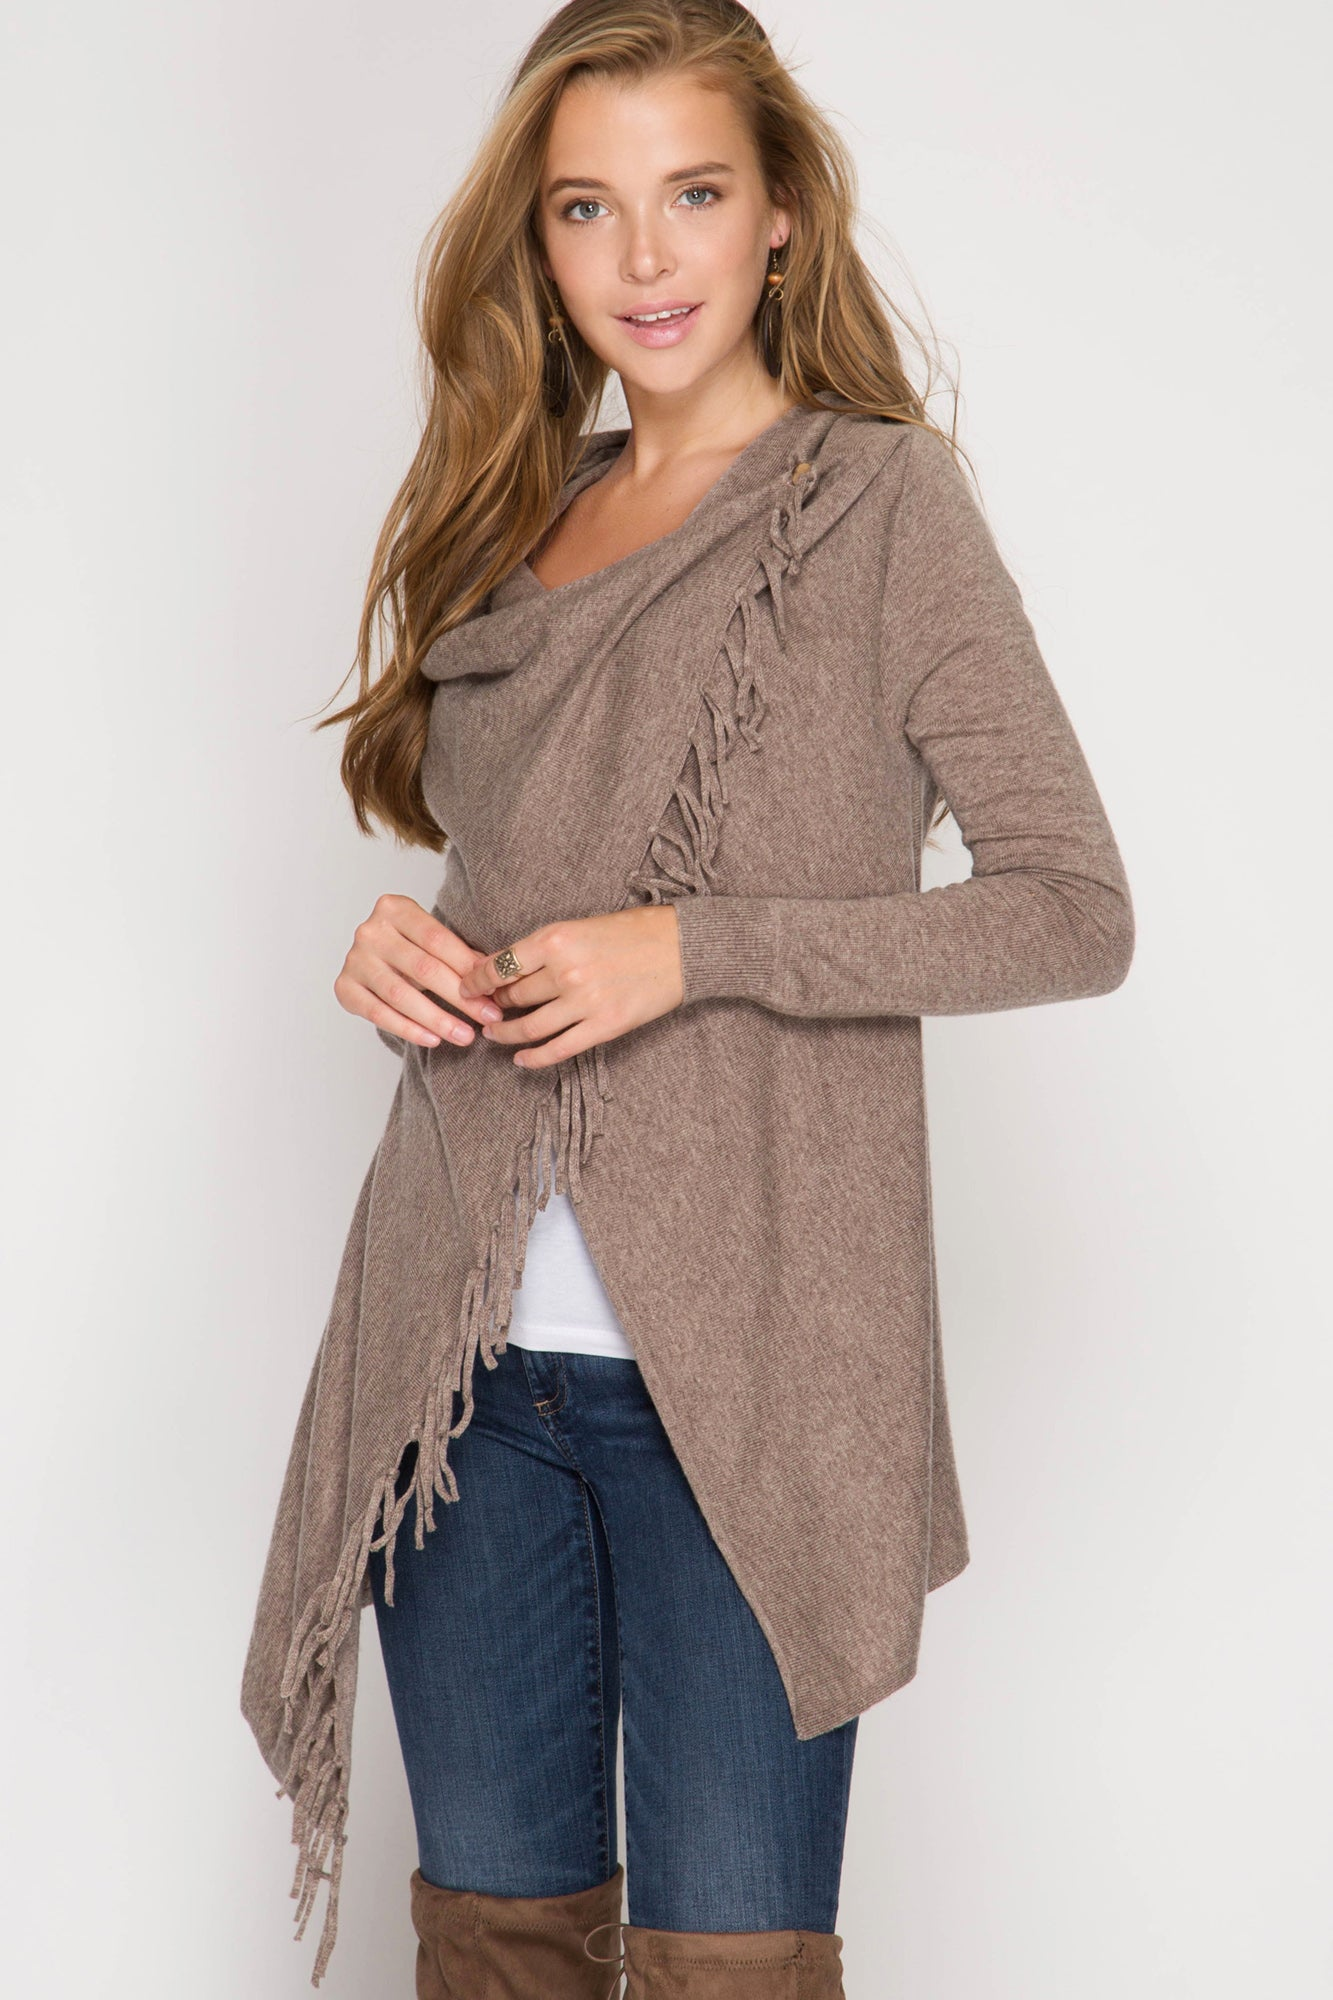 Long Sleeve Sweater Cardigan Wrap with Fringe